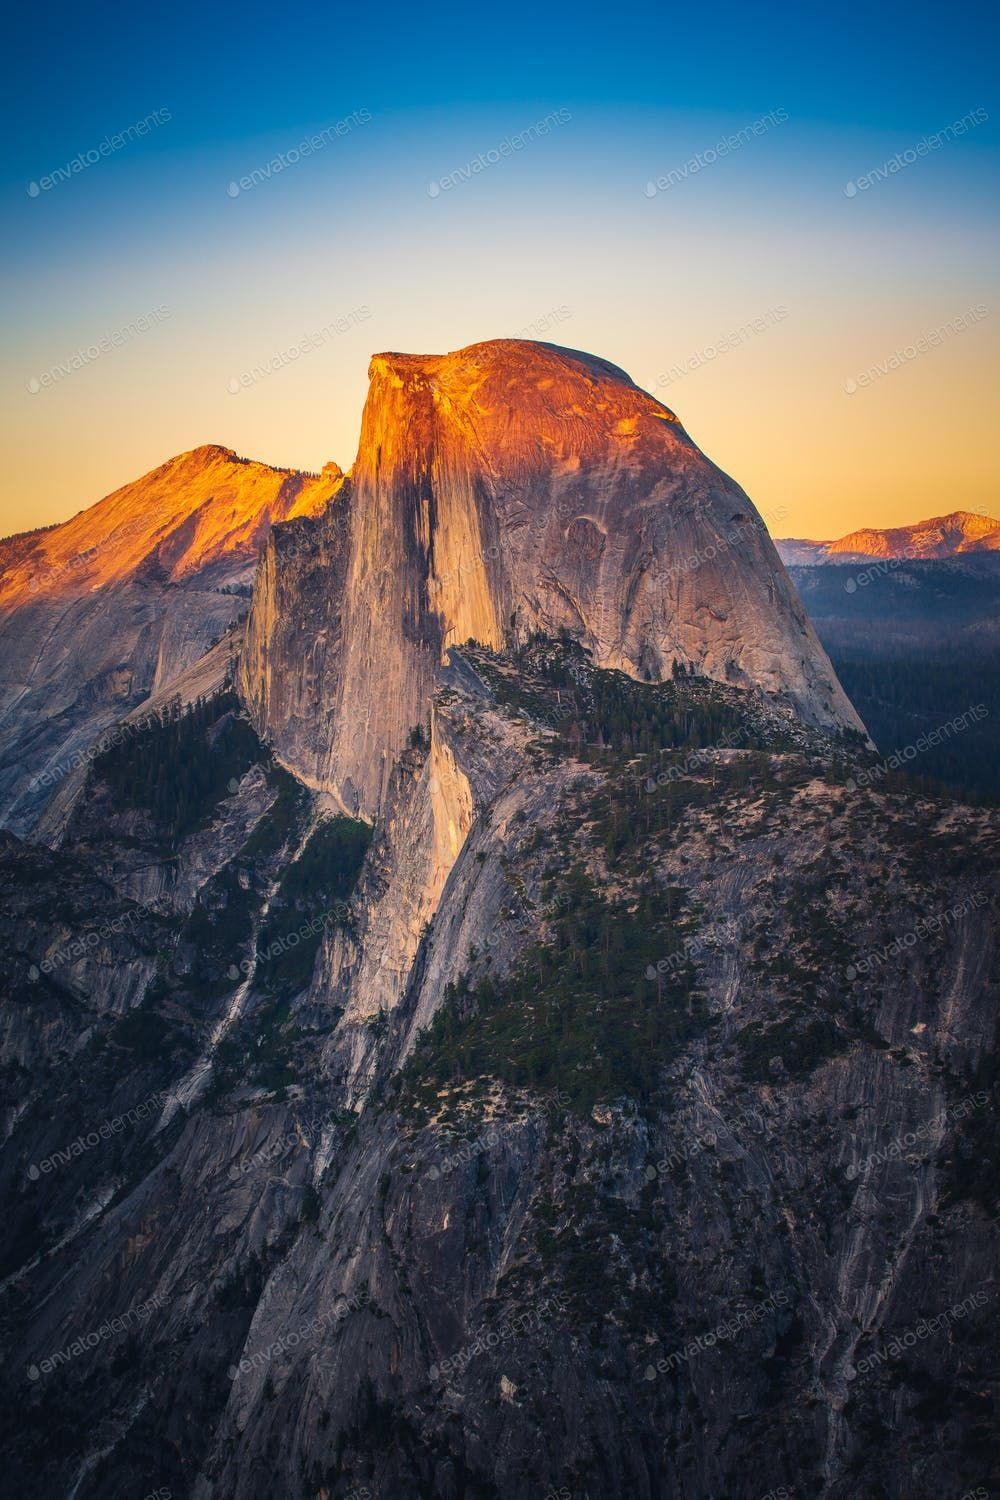 Sunset View Of Half Dome From Glacier Point In Yosemite Nationa Photo By Heyengel On Envato Elements Sunset Views Yosemite Travel Tree [ 1500 x 1000 Pixel ]